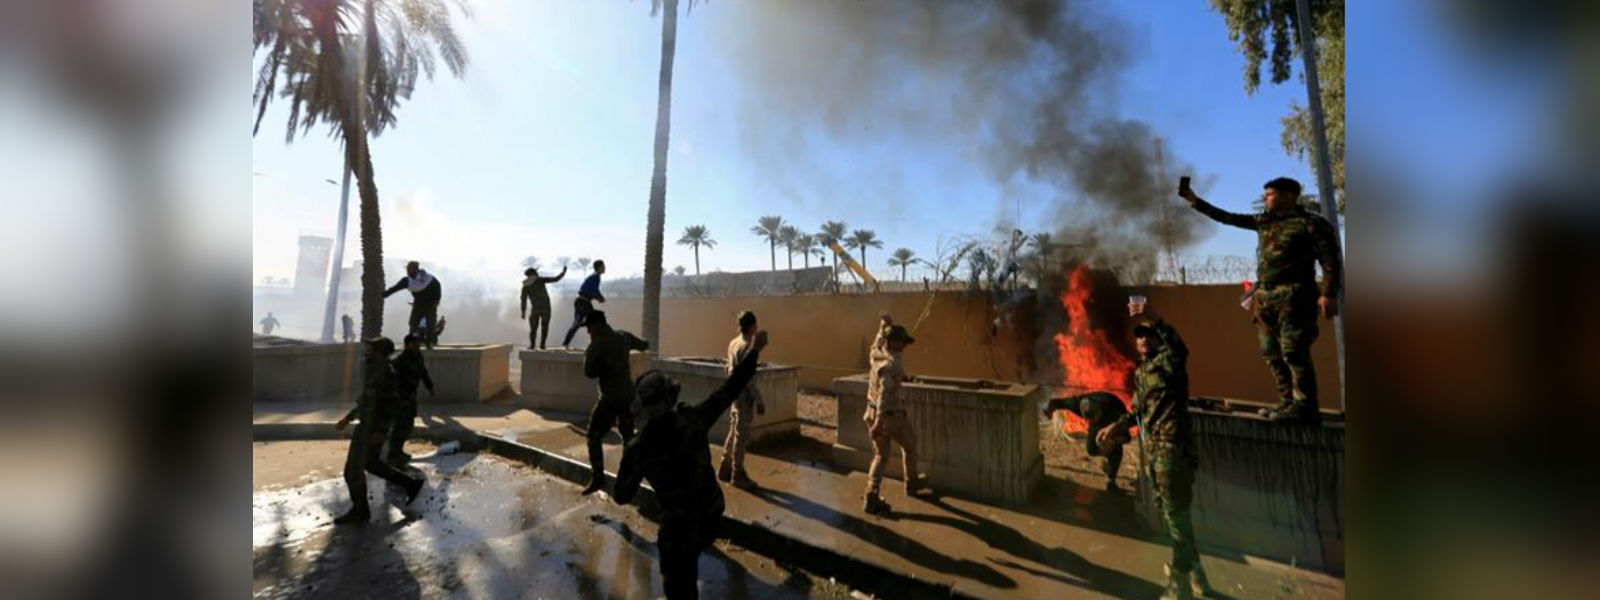 Protesters set fire to US embassy in Baghdad